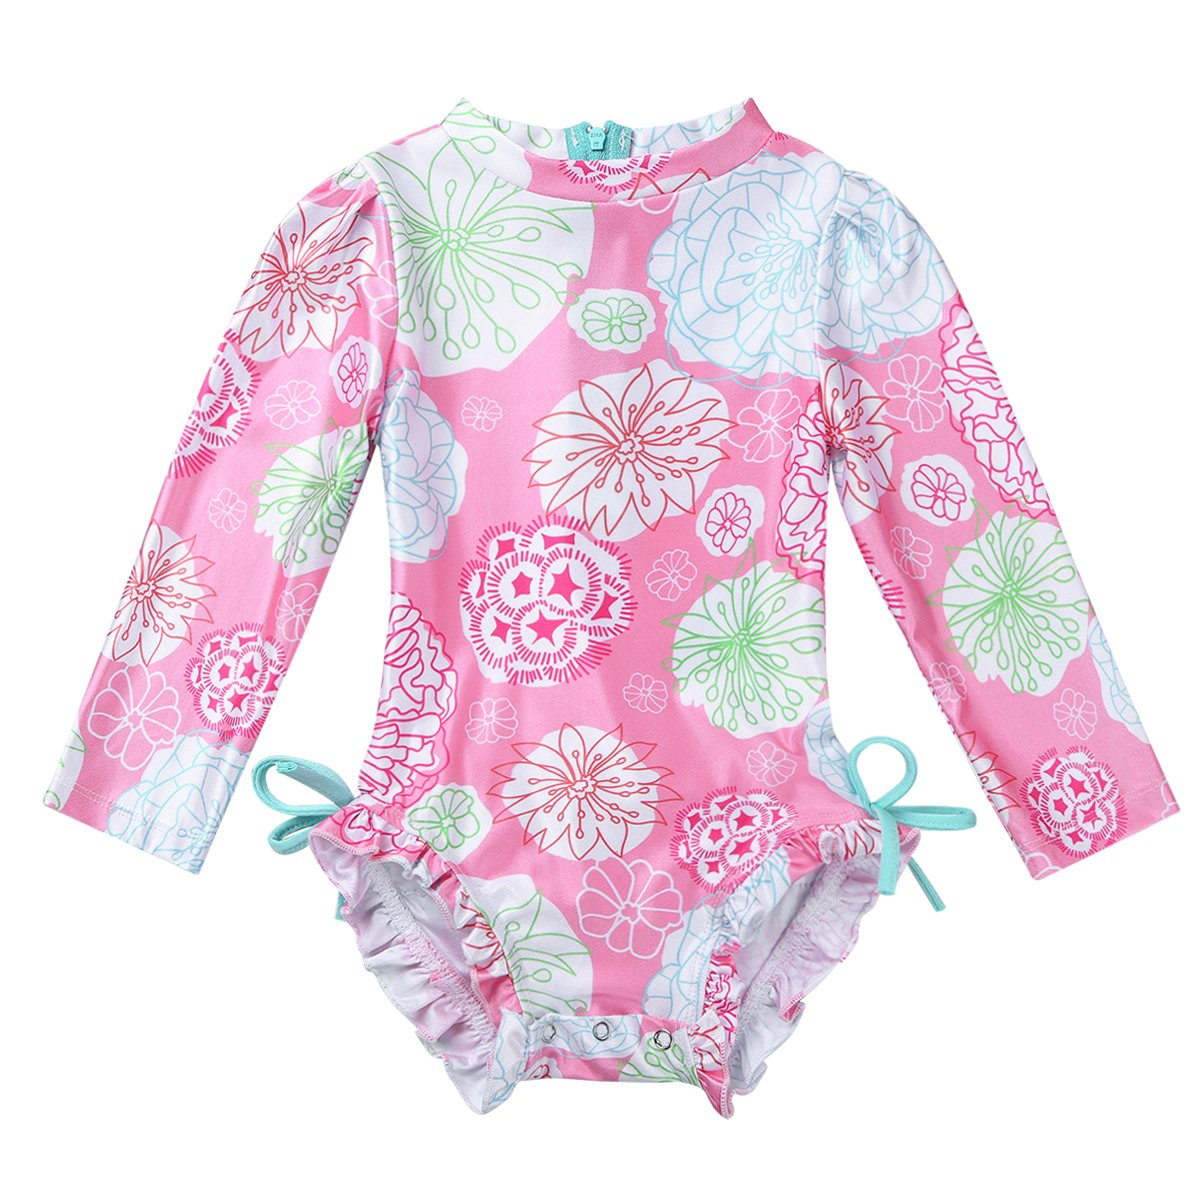 Alvivi Infant Baby Girls Long Sleeve One Piece Floral Printed Swimsuit Bathing Suit Rash Guard